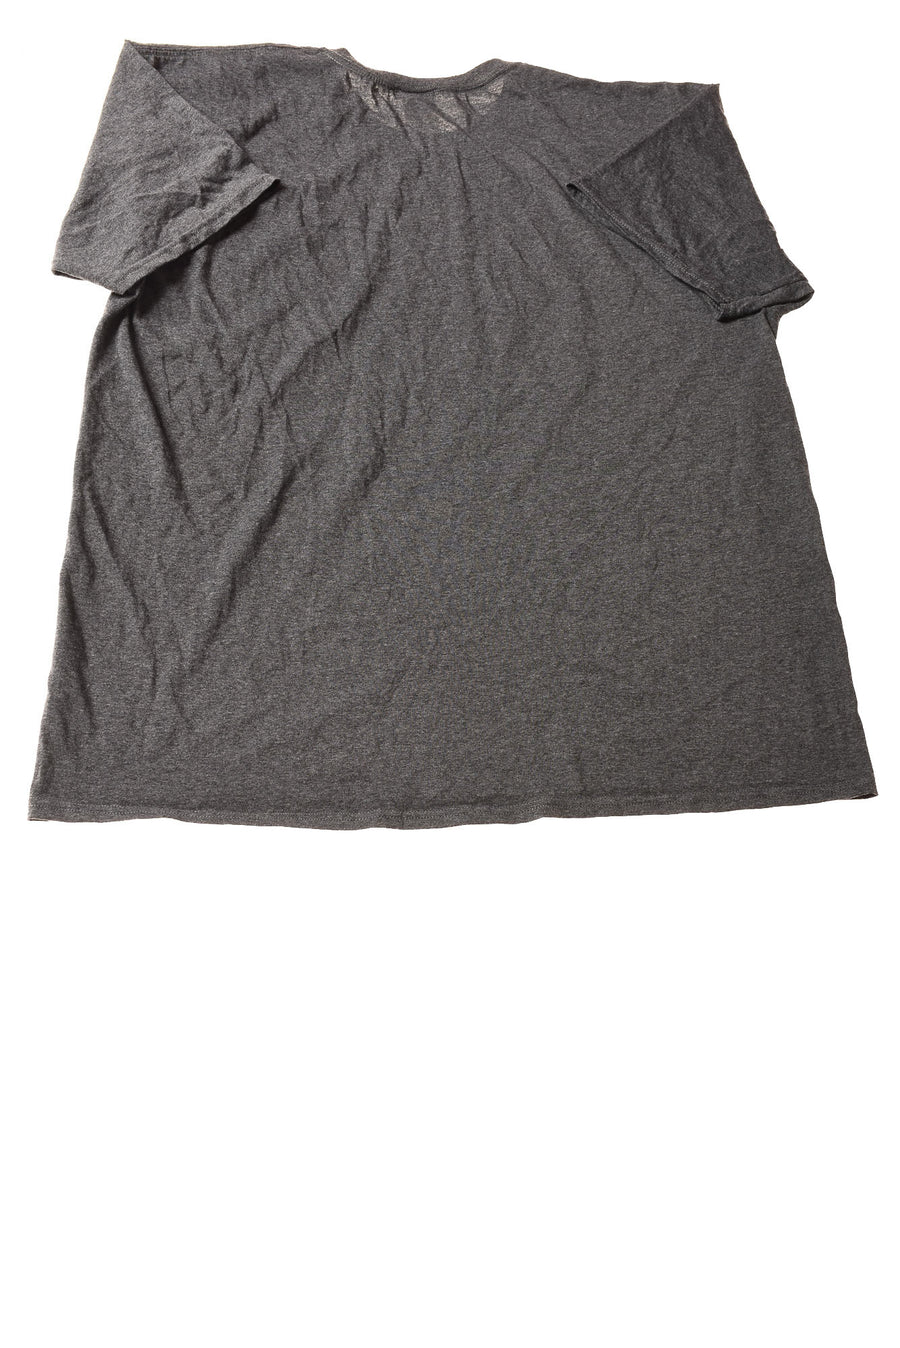 USED Fruit Of The Loom Men's Shirt X-Large Gray